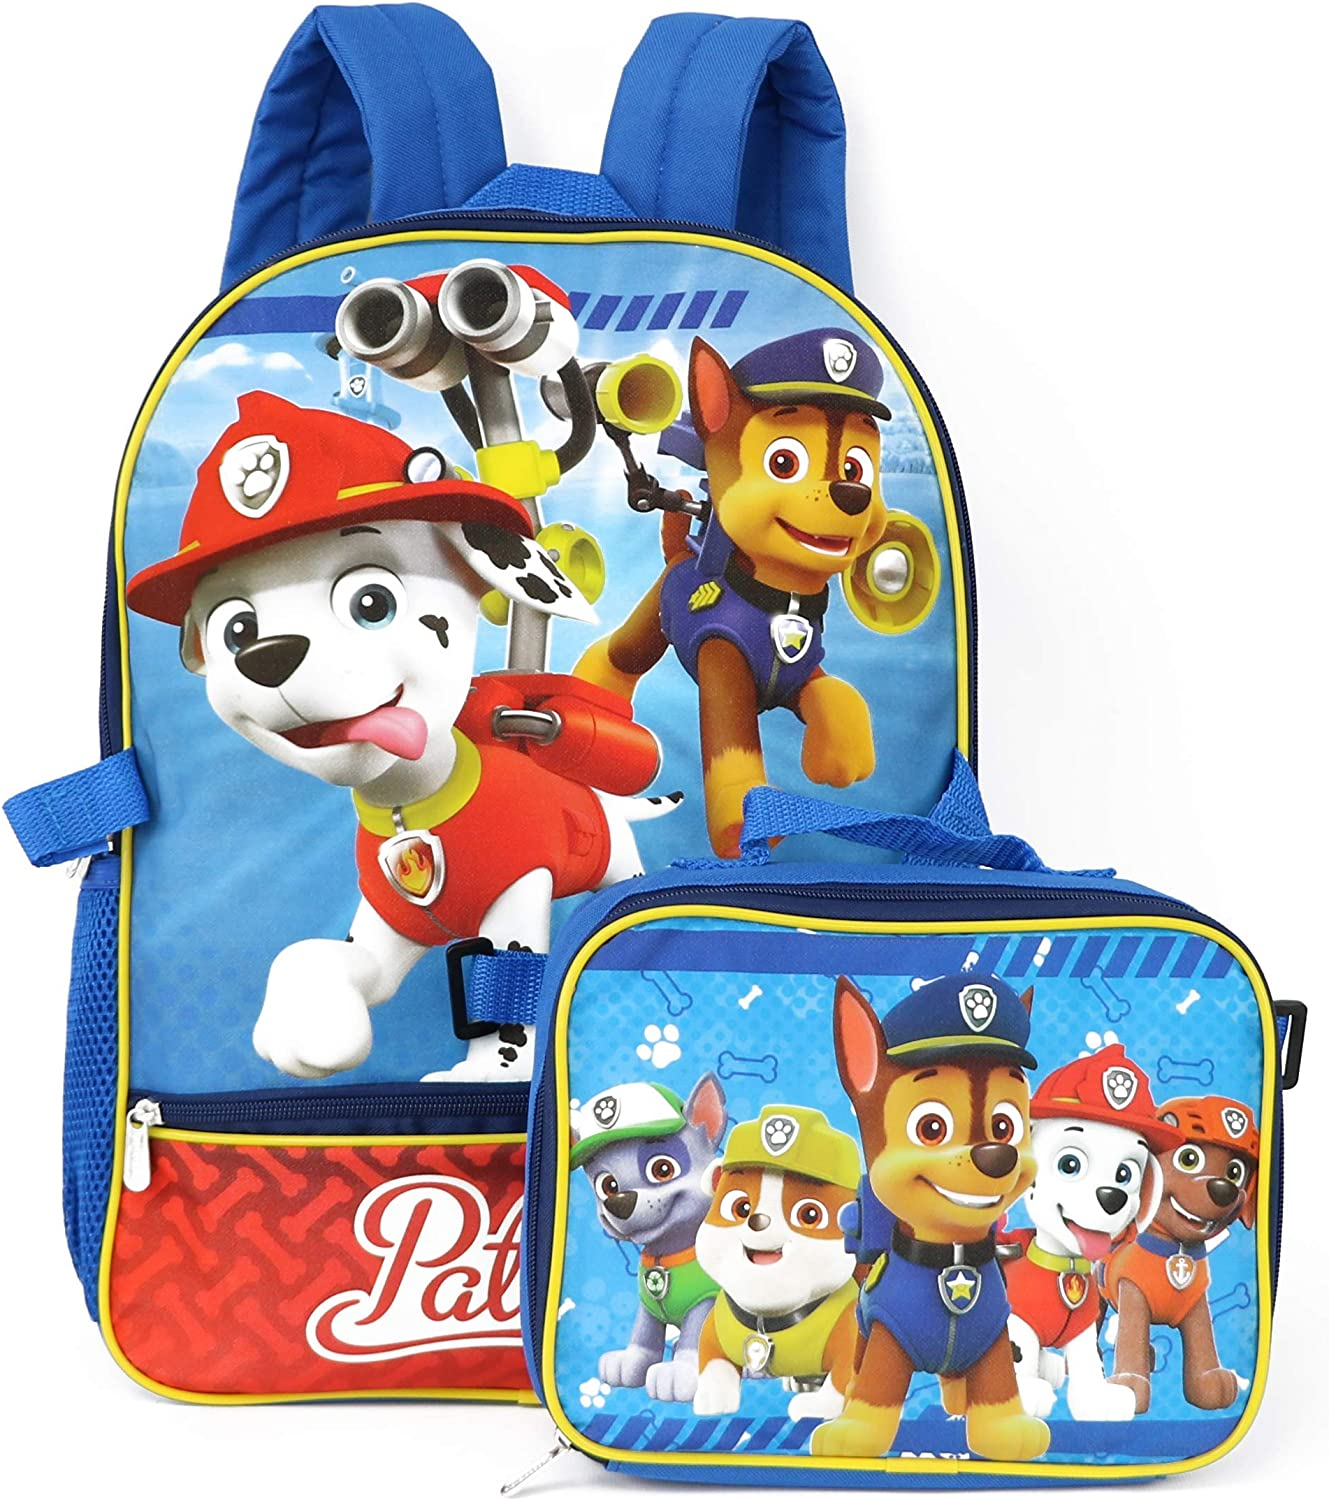 Nickelodeon Boys' Paw Patrol Max 43% OFF Backpack with ONE Blue Lunch Red sold out